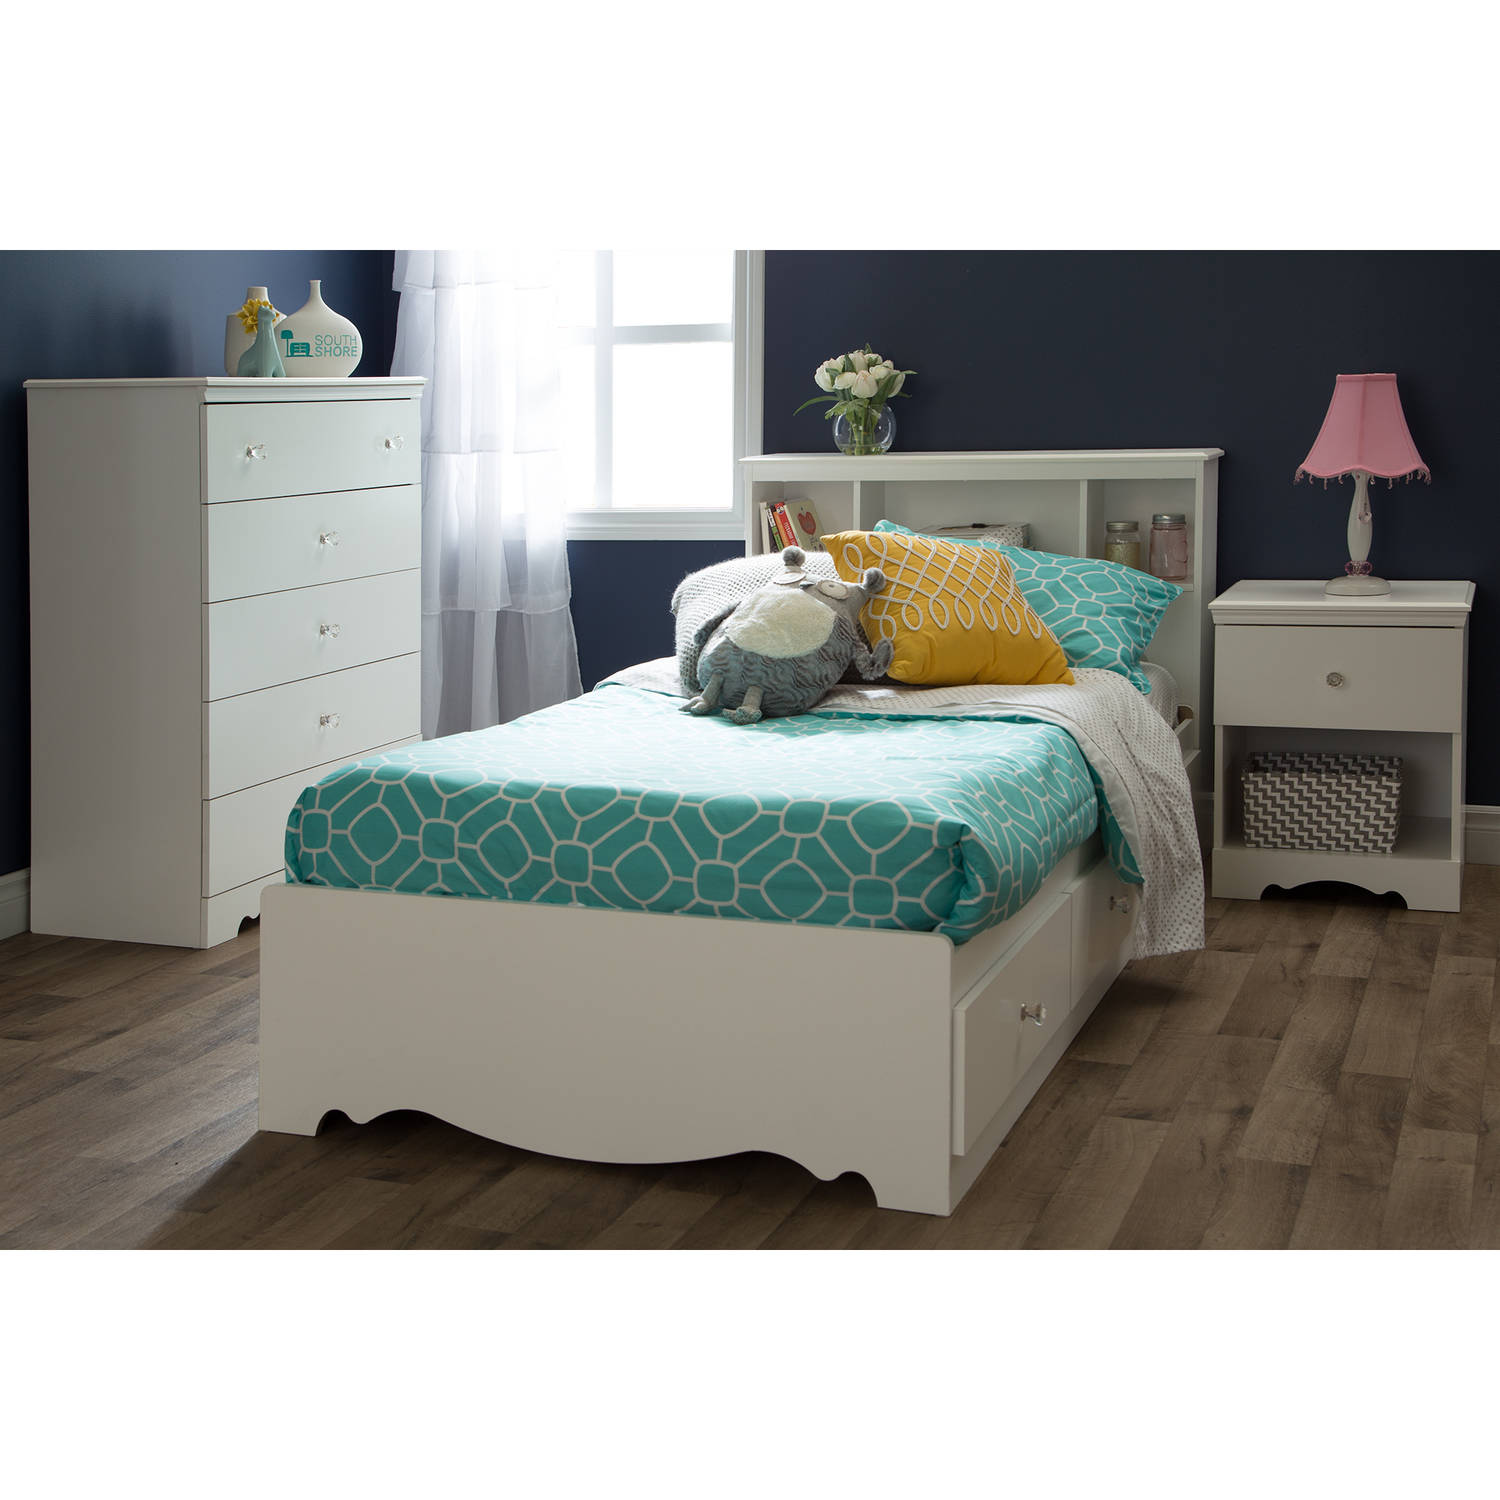 Details About South Shore Crystal Mates Twin Bed Storage Drawer White Kids Bedroom Furniture